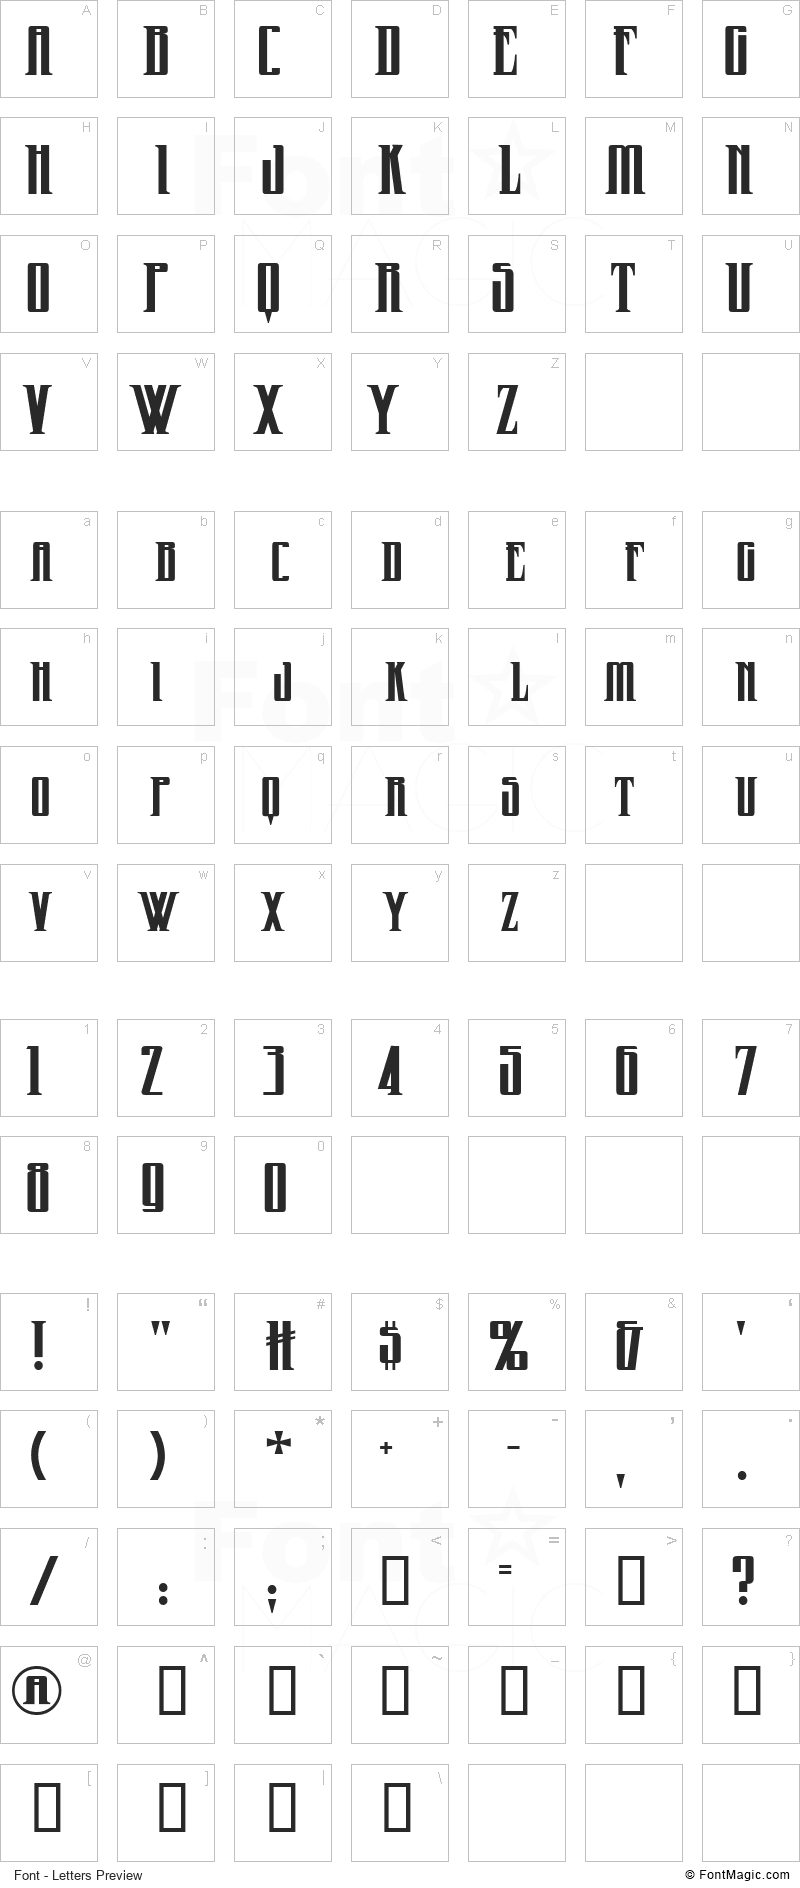 Wicked Queen Font - All Latters Preview Chart